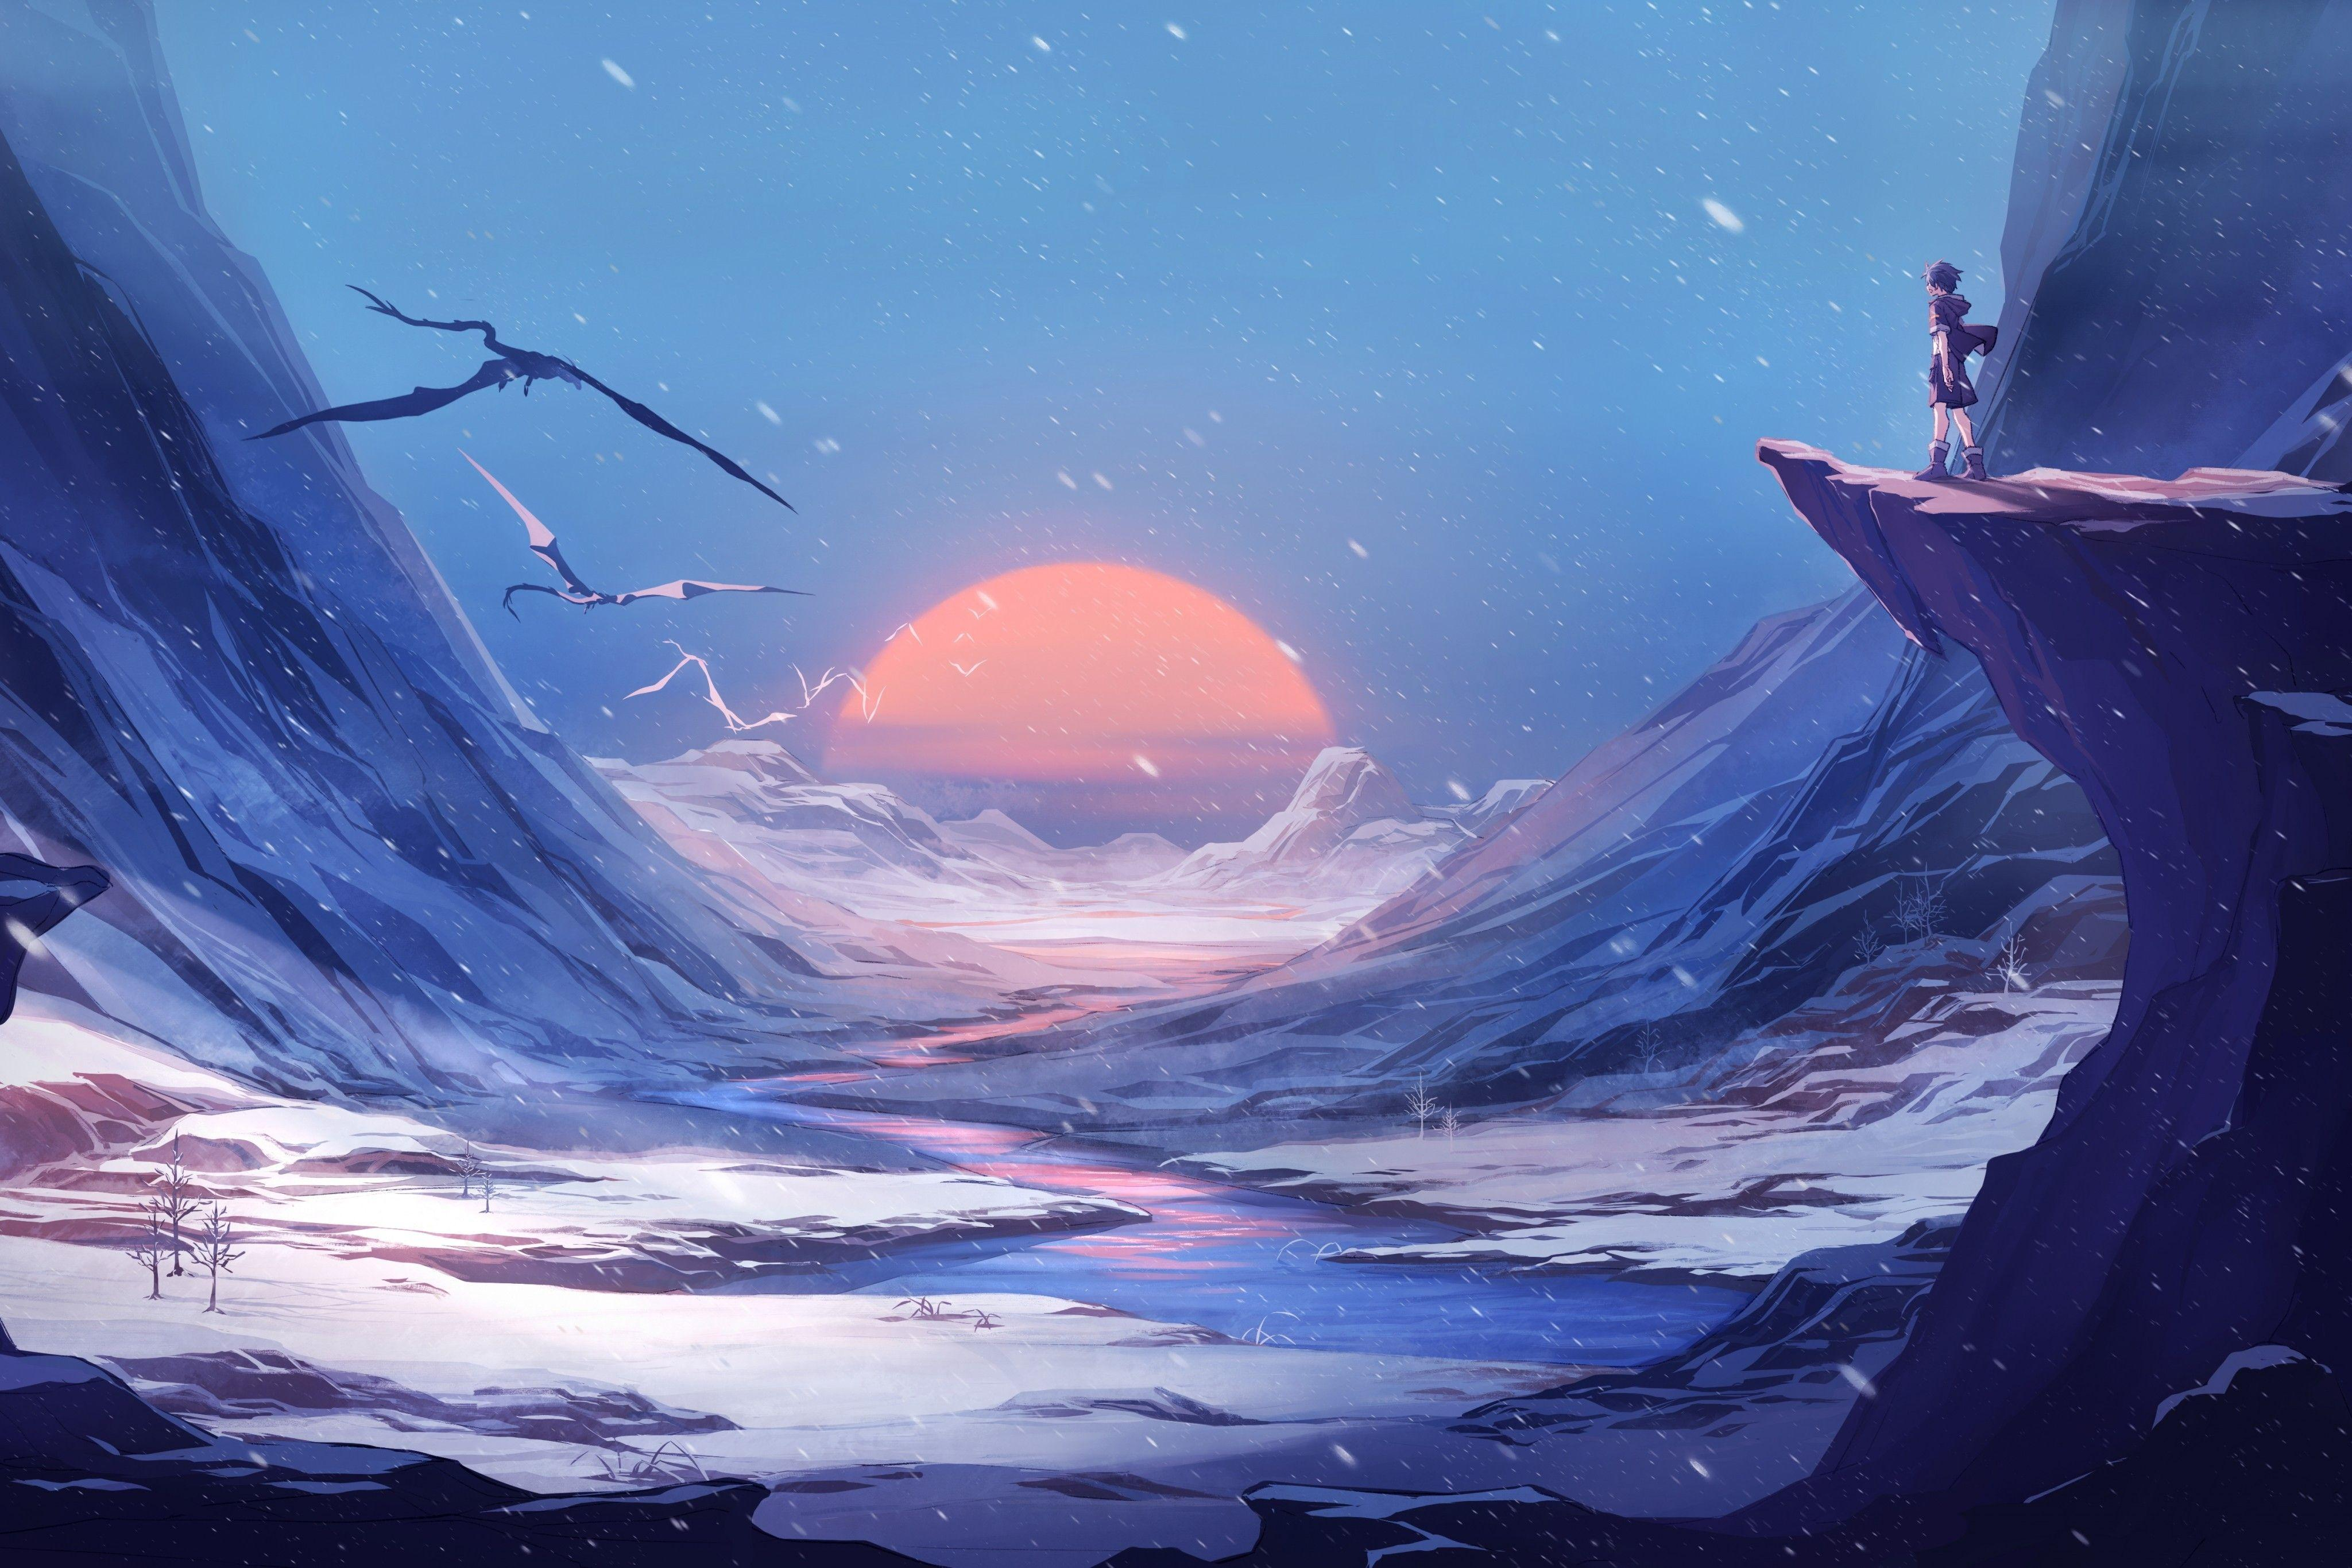 Snow Winter Anime Wallpapers - Wallpaper Cave